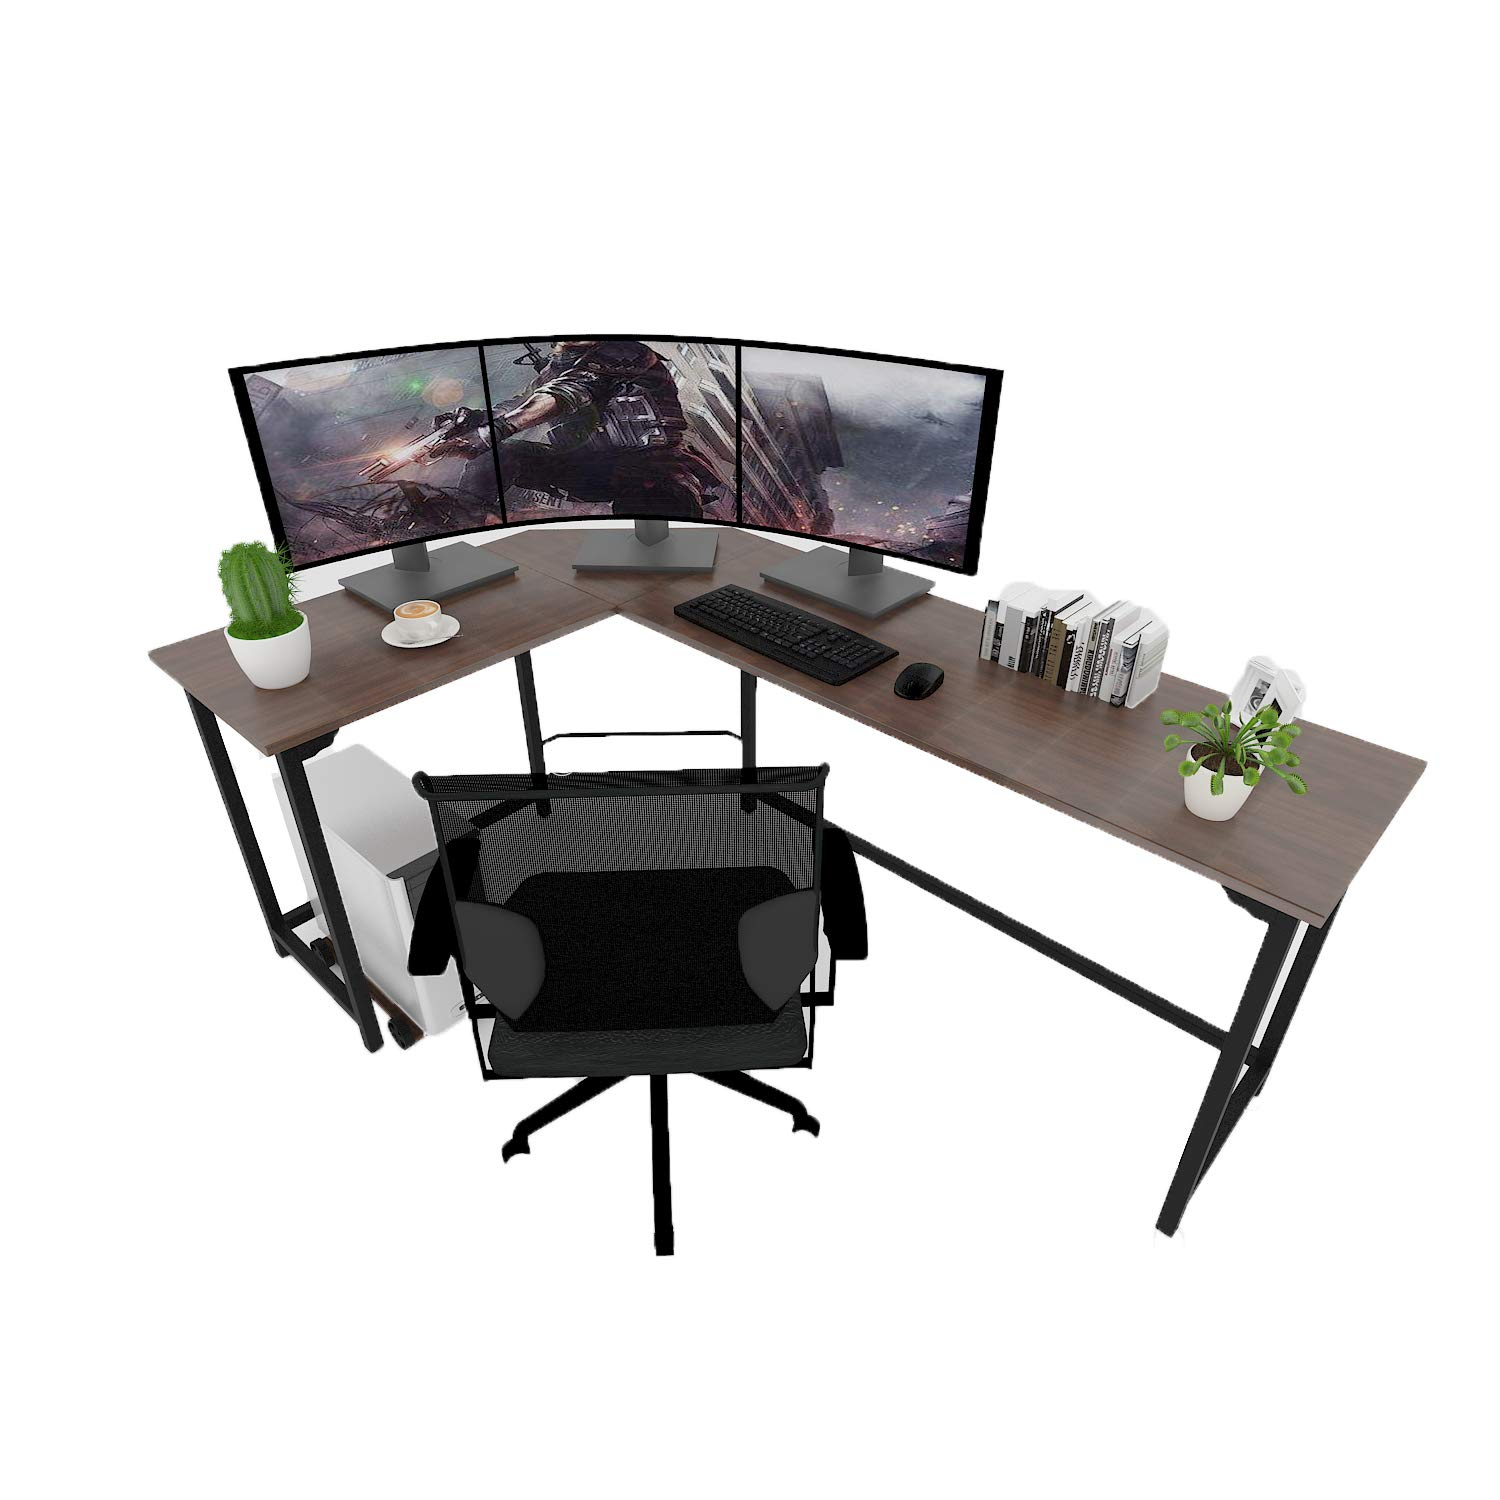 SZXKT L-Shaped Corner Desk for Gaming and Studying 3-Piece Interchangeable Wood & Metal Home Office Computer PC Table Workstation (Walnut) by SZXKT